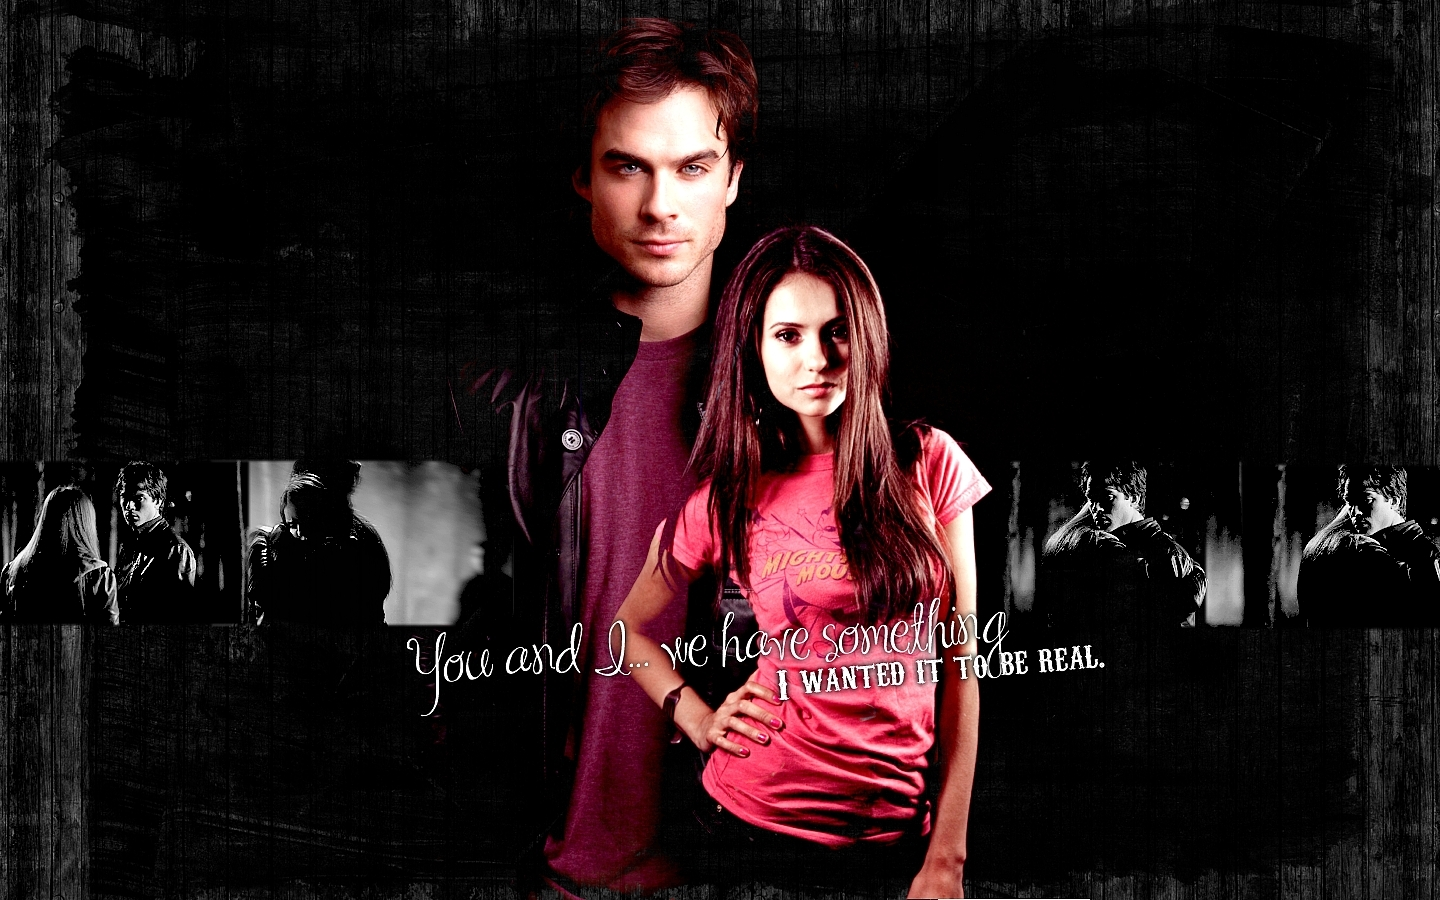 vampire diaries damon and elena dating in real life